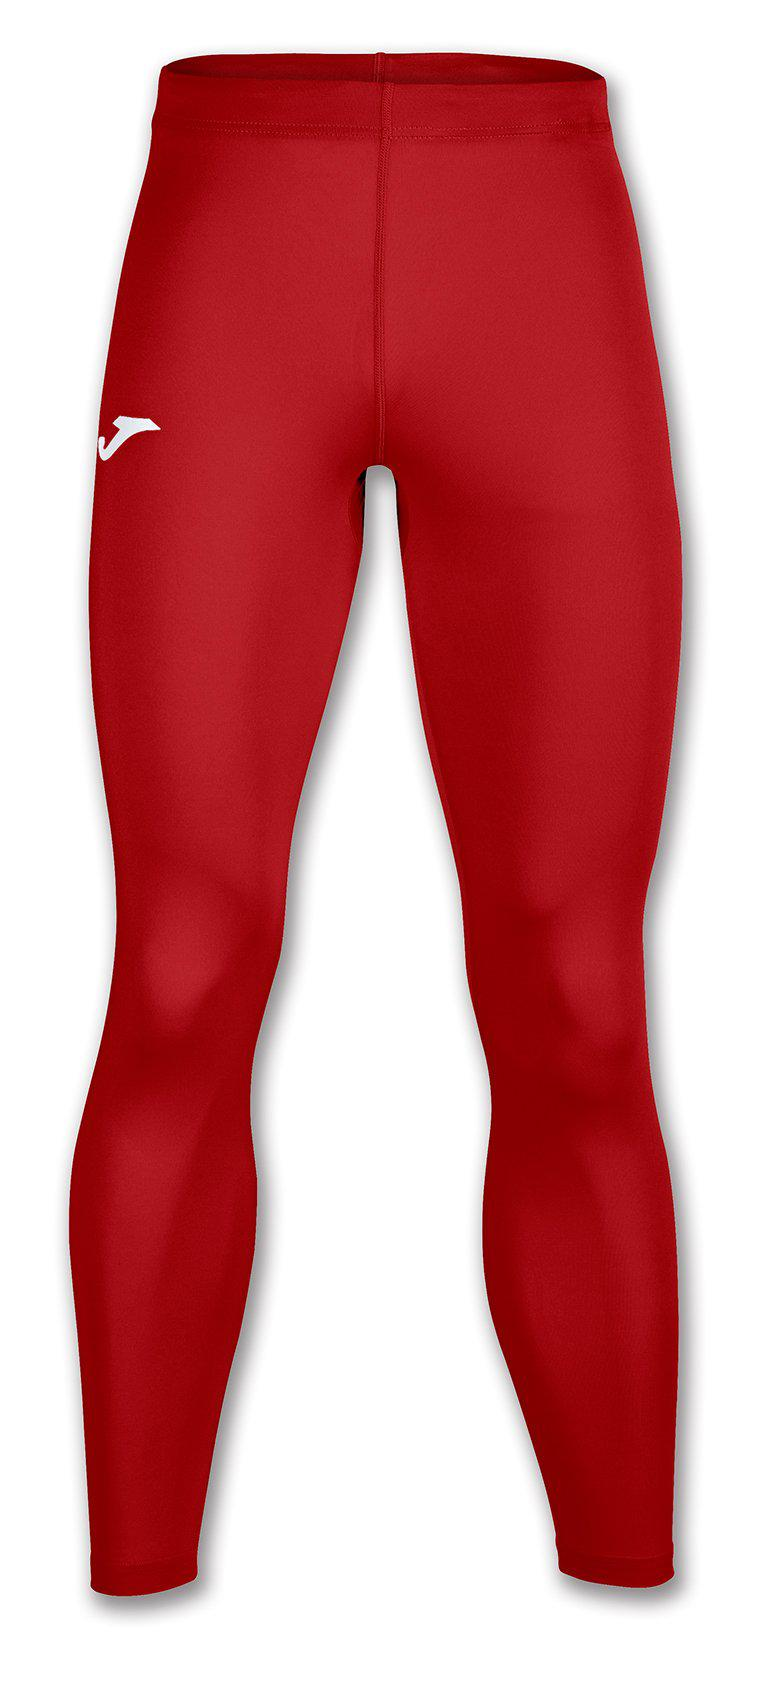 Joma Brama Academy Thermal Compression Tights-Soccer Command